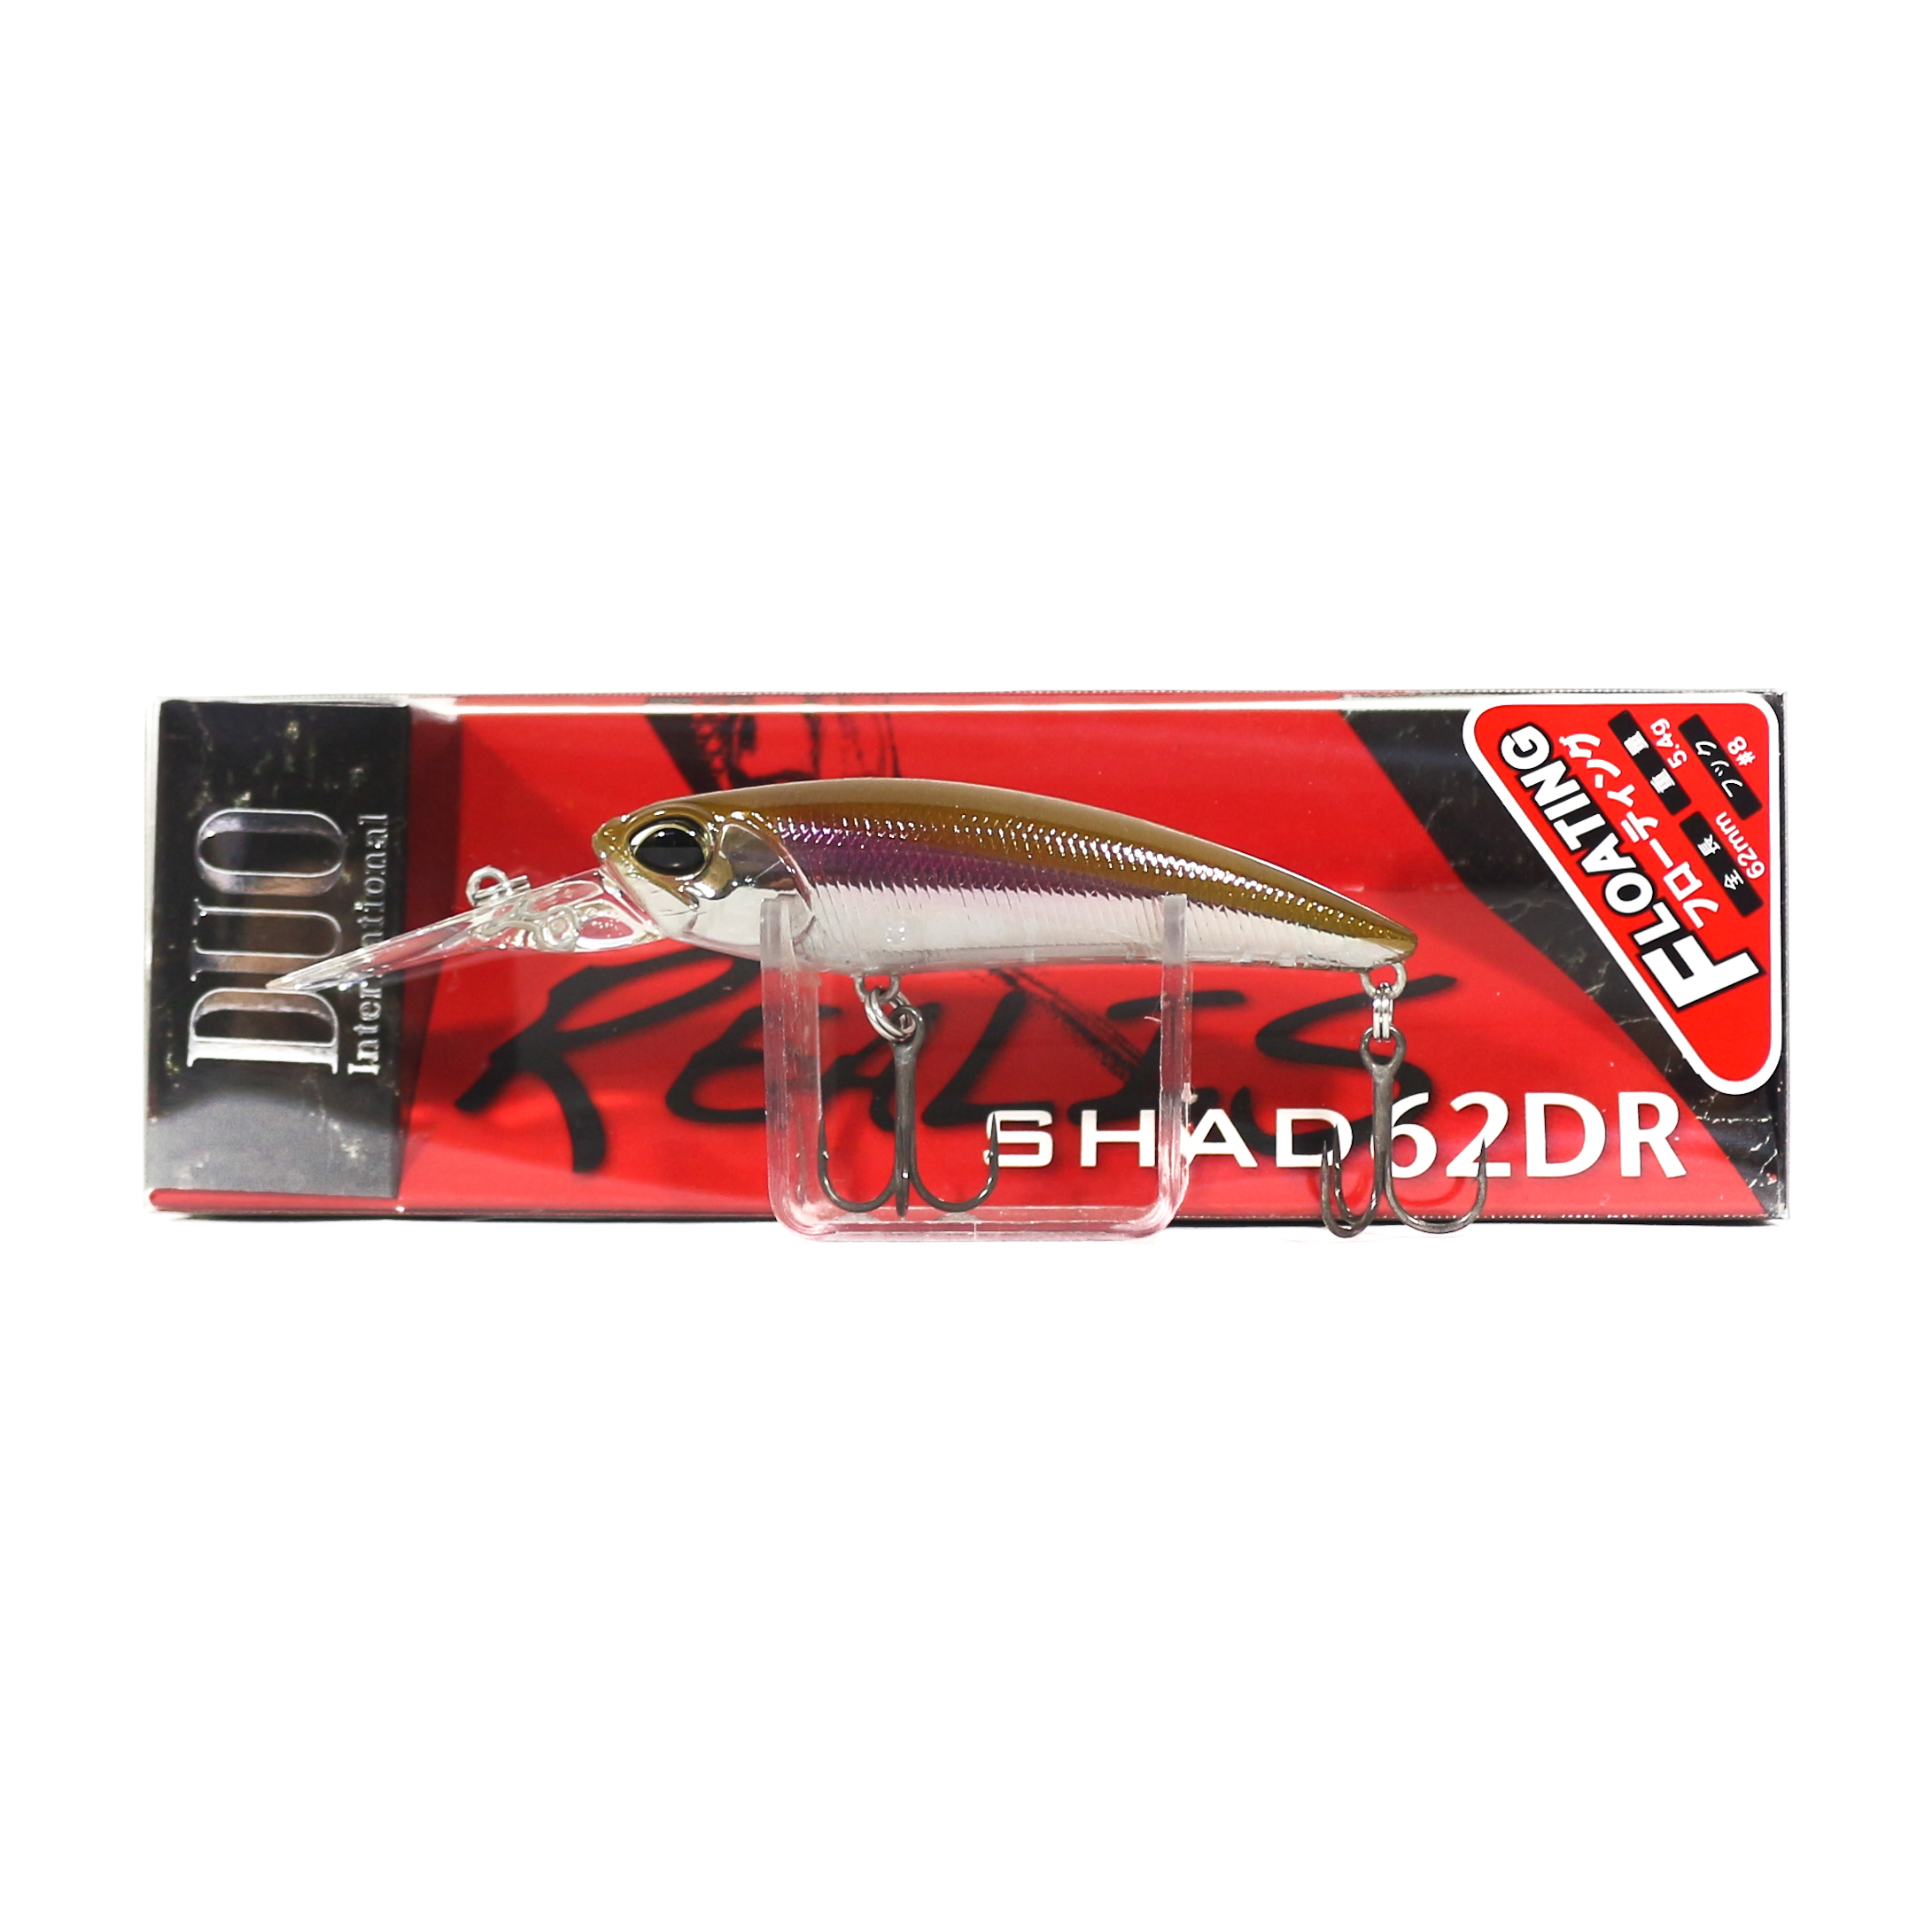 Duo Realis Shad 62 DR F Floating Lure DRA3013 (5819)